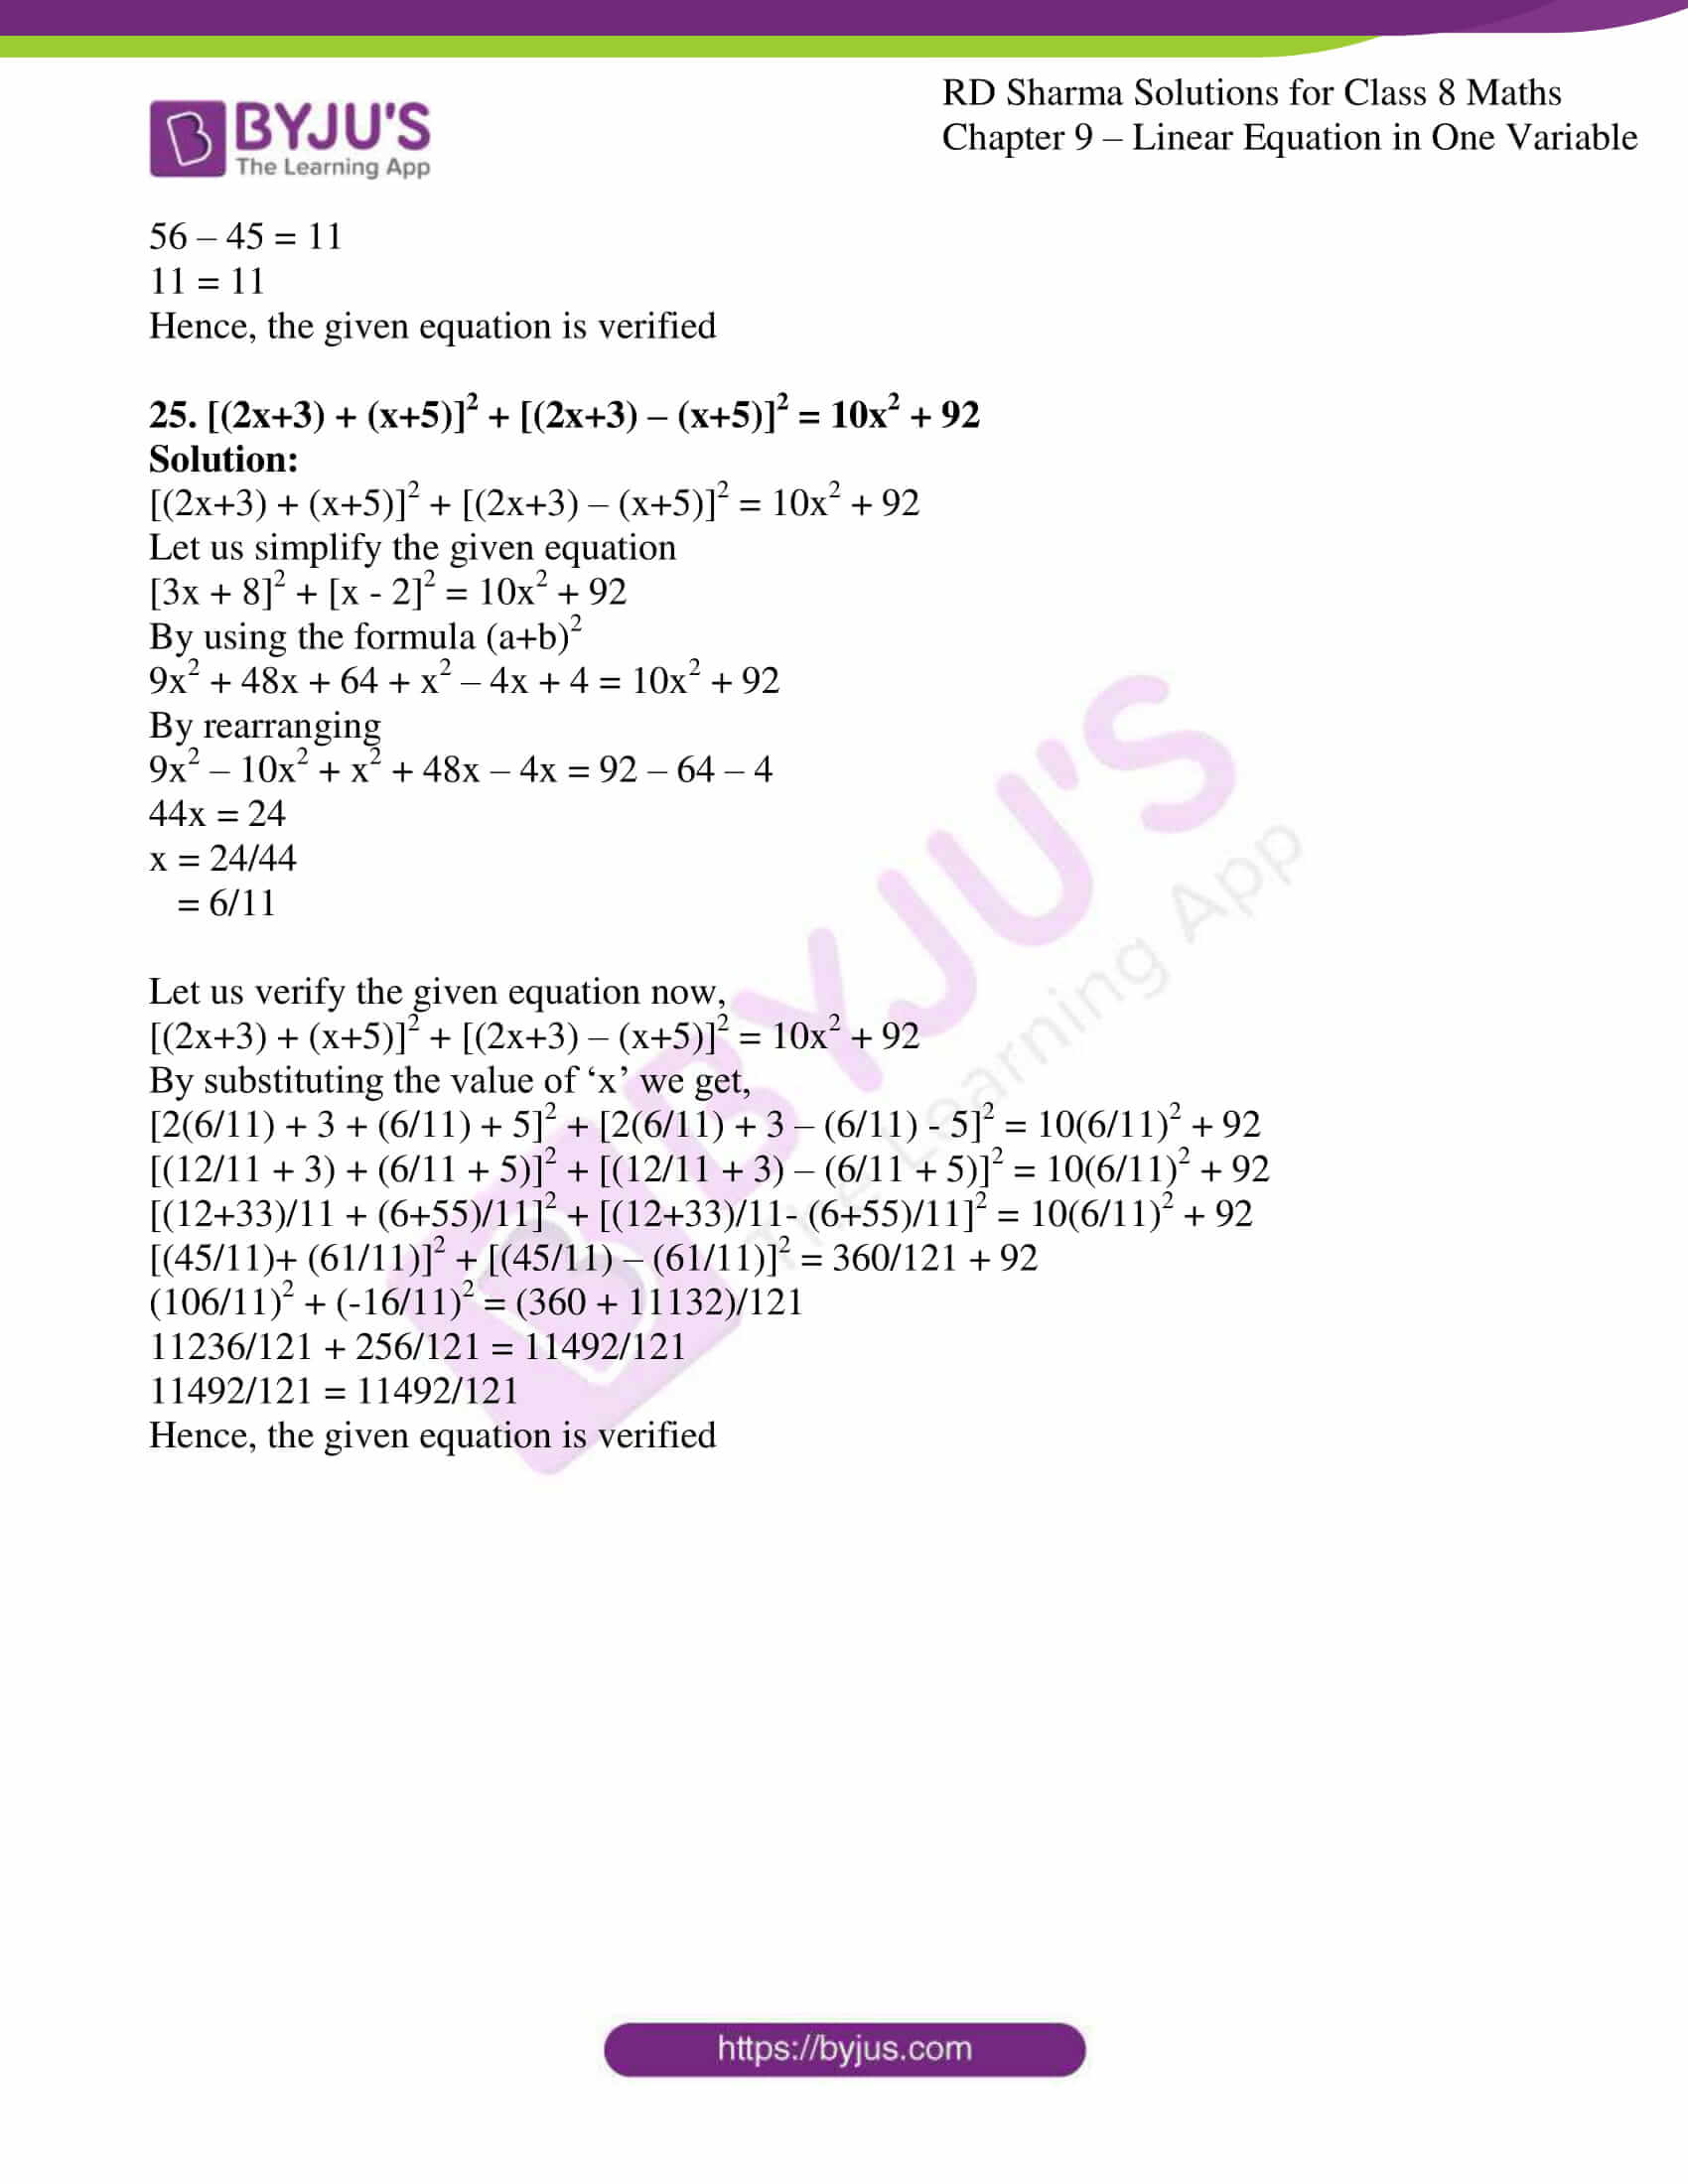 rd sharma class 8 maths chapter 9 exercise 2 16